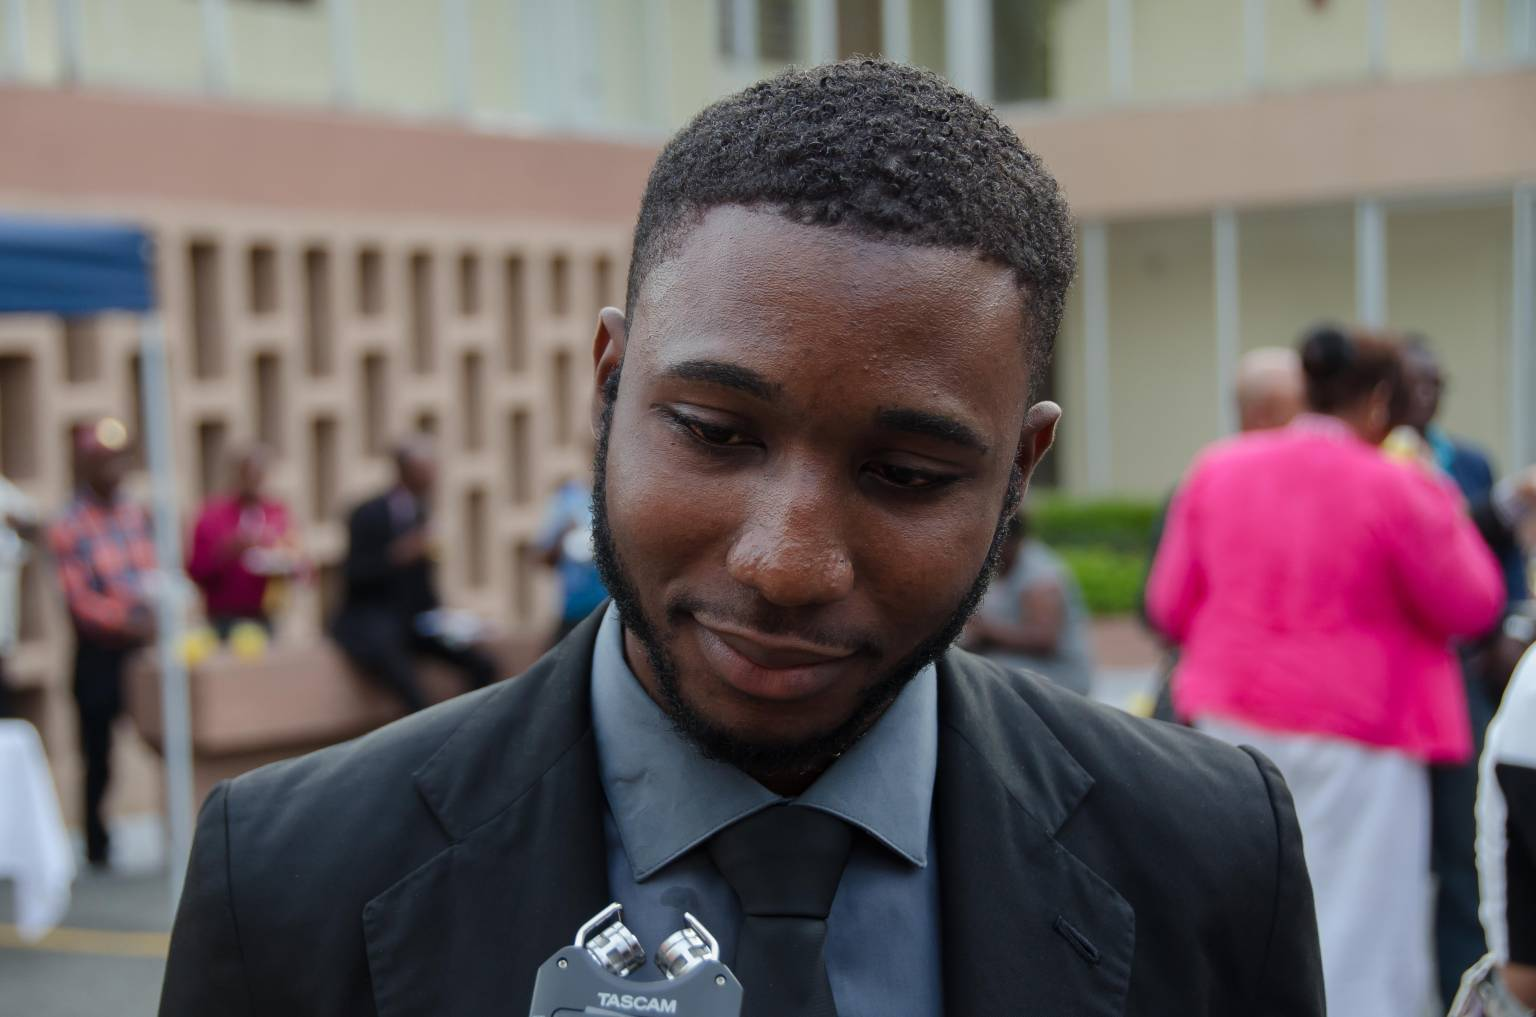 Nicholas Campbell completed a one-year course in Chemistry, Biology and Calculus in the Faculty of Science and Technology at the University of the West Indies, (UWI), Mona Campus